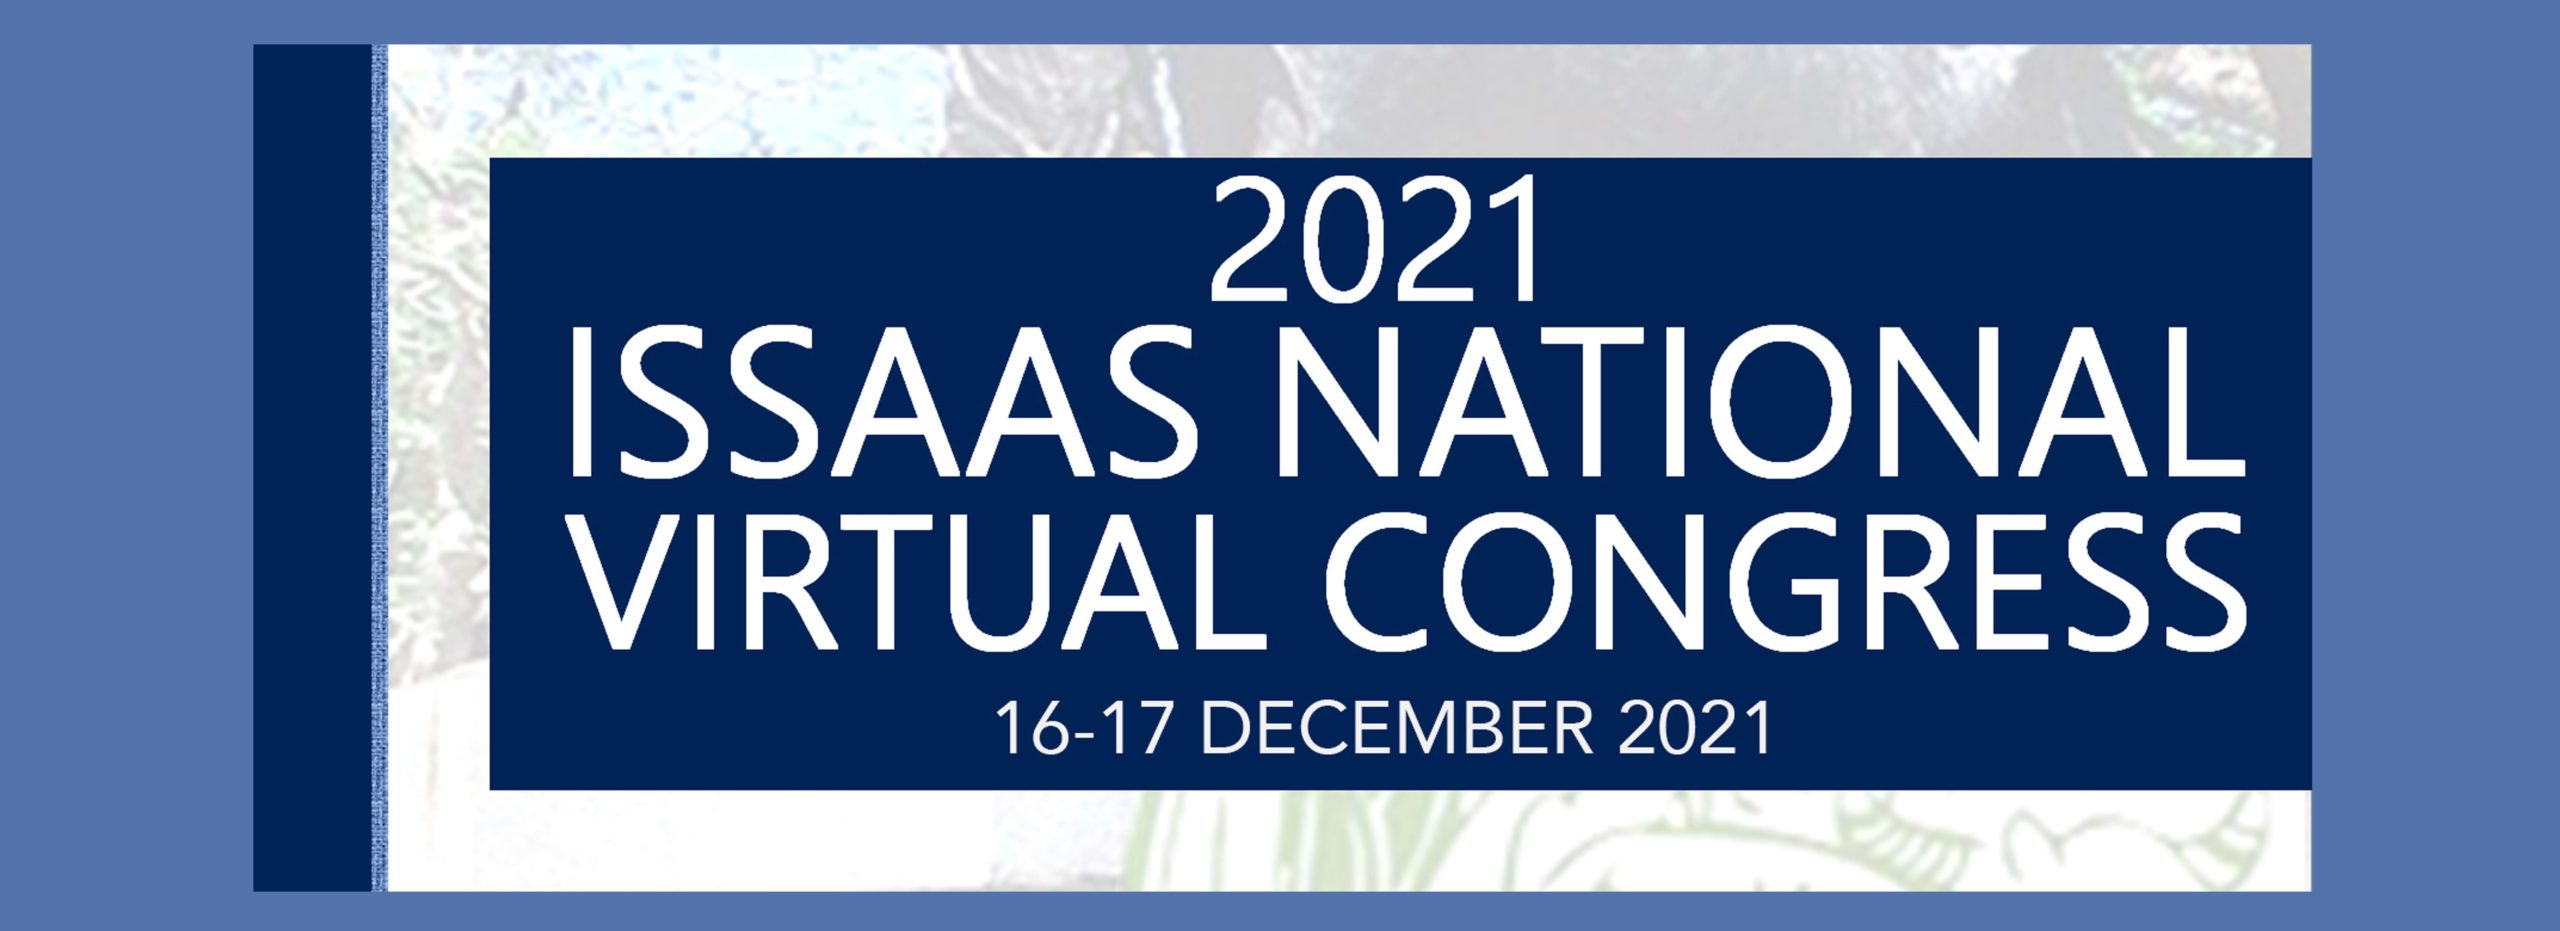 2021 ISSAAS National Virtual Congress